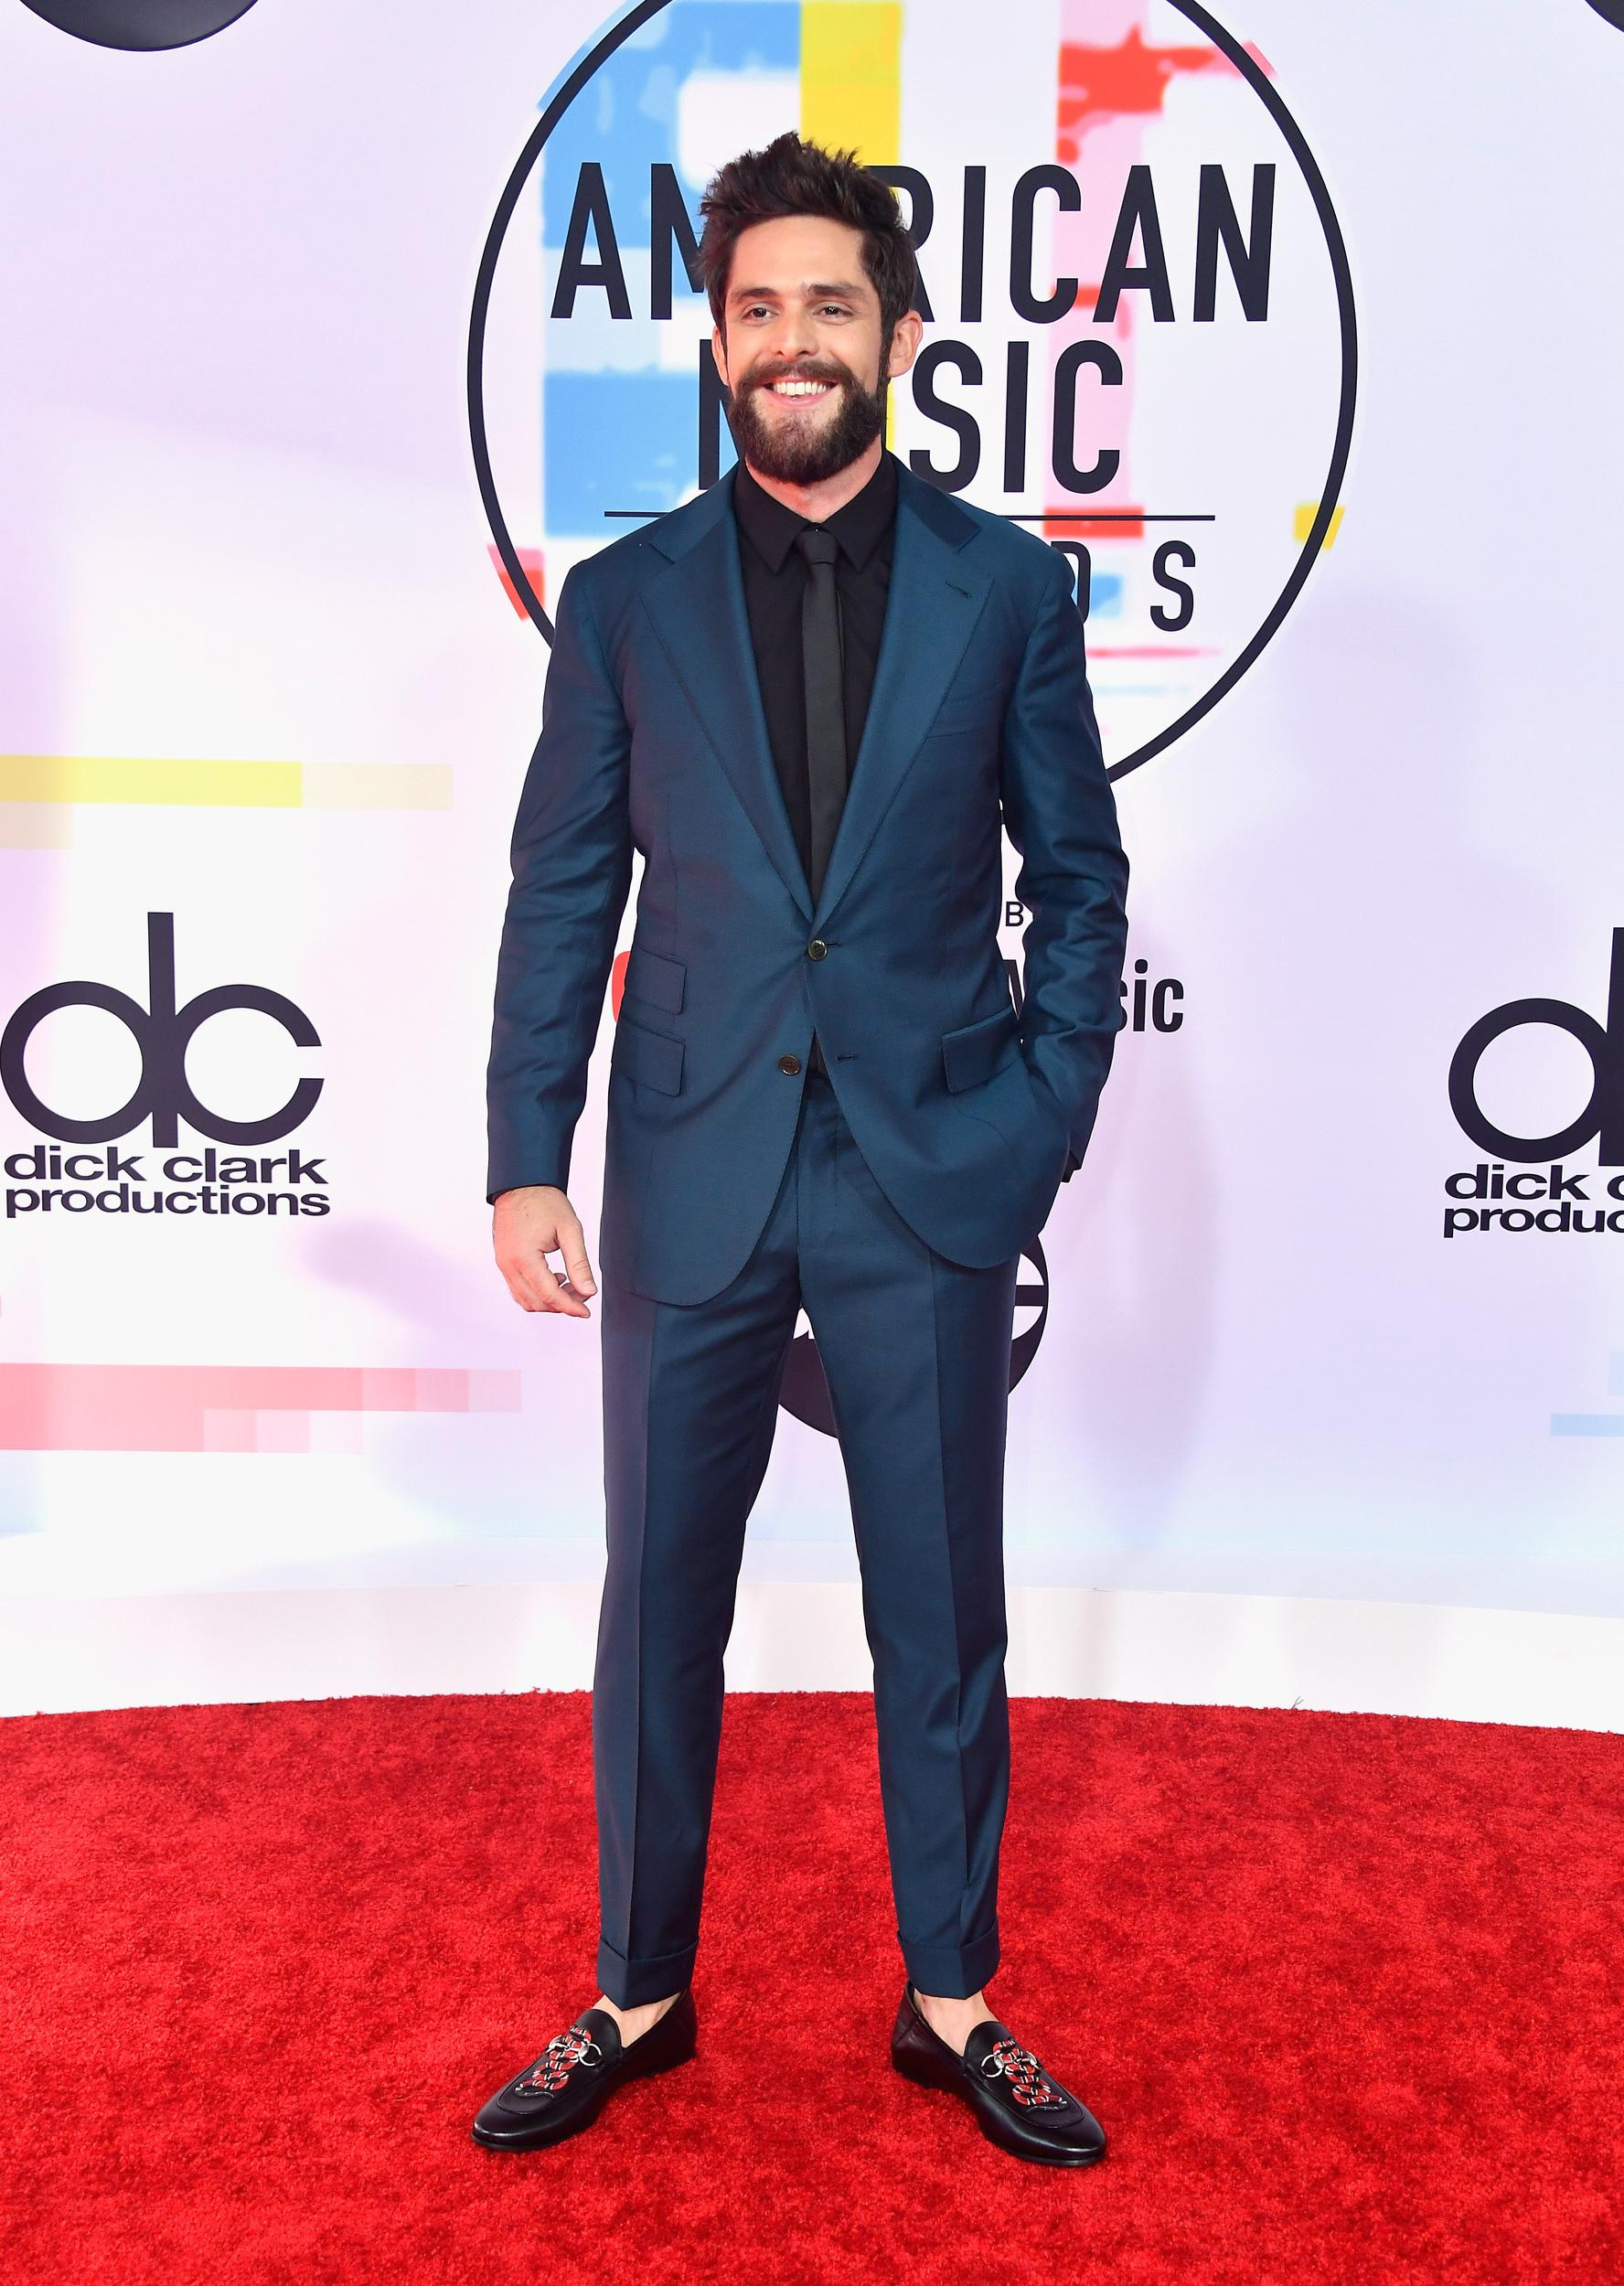 LOS ANGELES, CA - OCTOBER 09: Thomas Rhett attends the 2018 American Music Awards at Microsoft Theater on October 9, 2018 in Los Angeles, California. (Photo by Frazer Harrison/Getty Images)